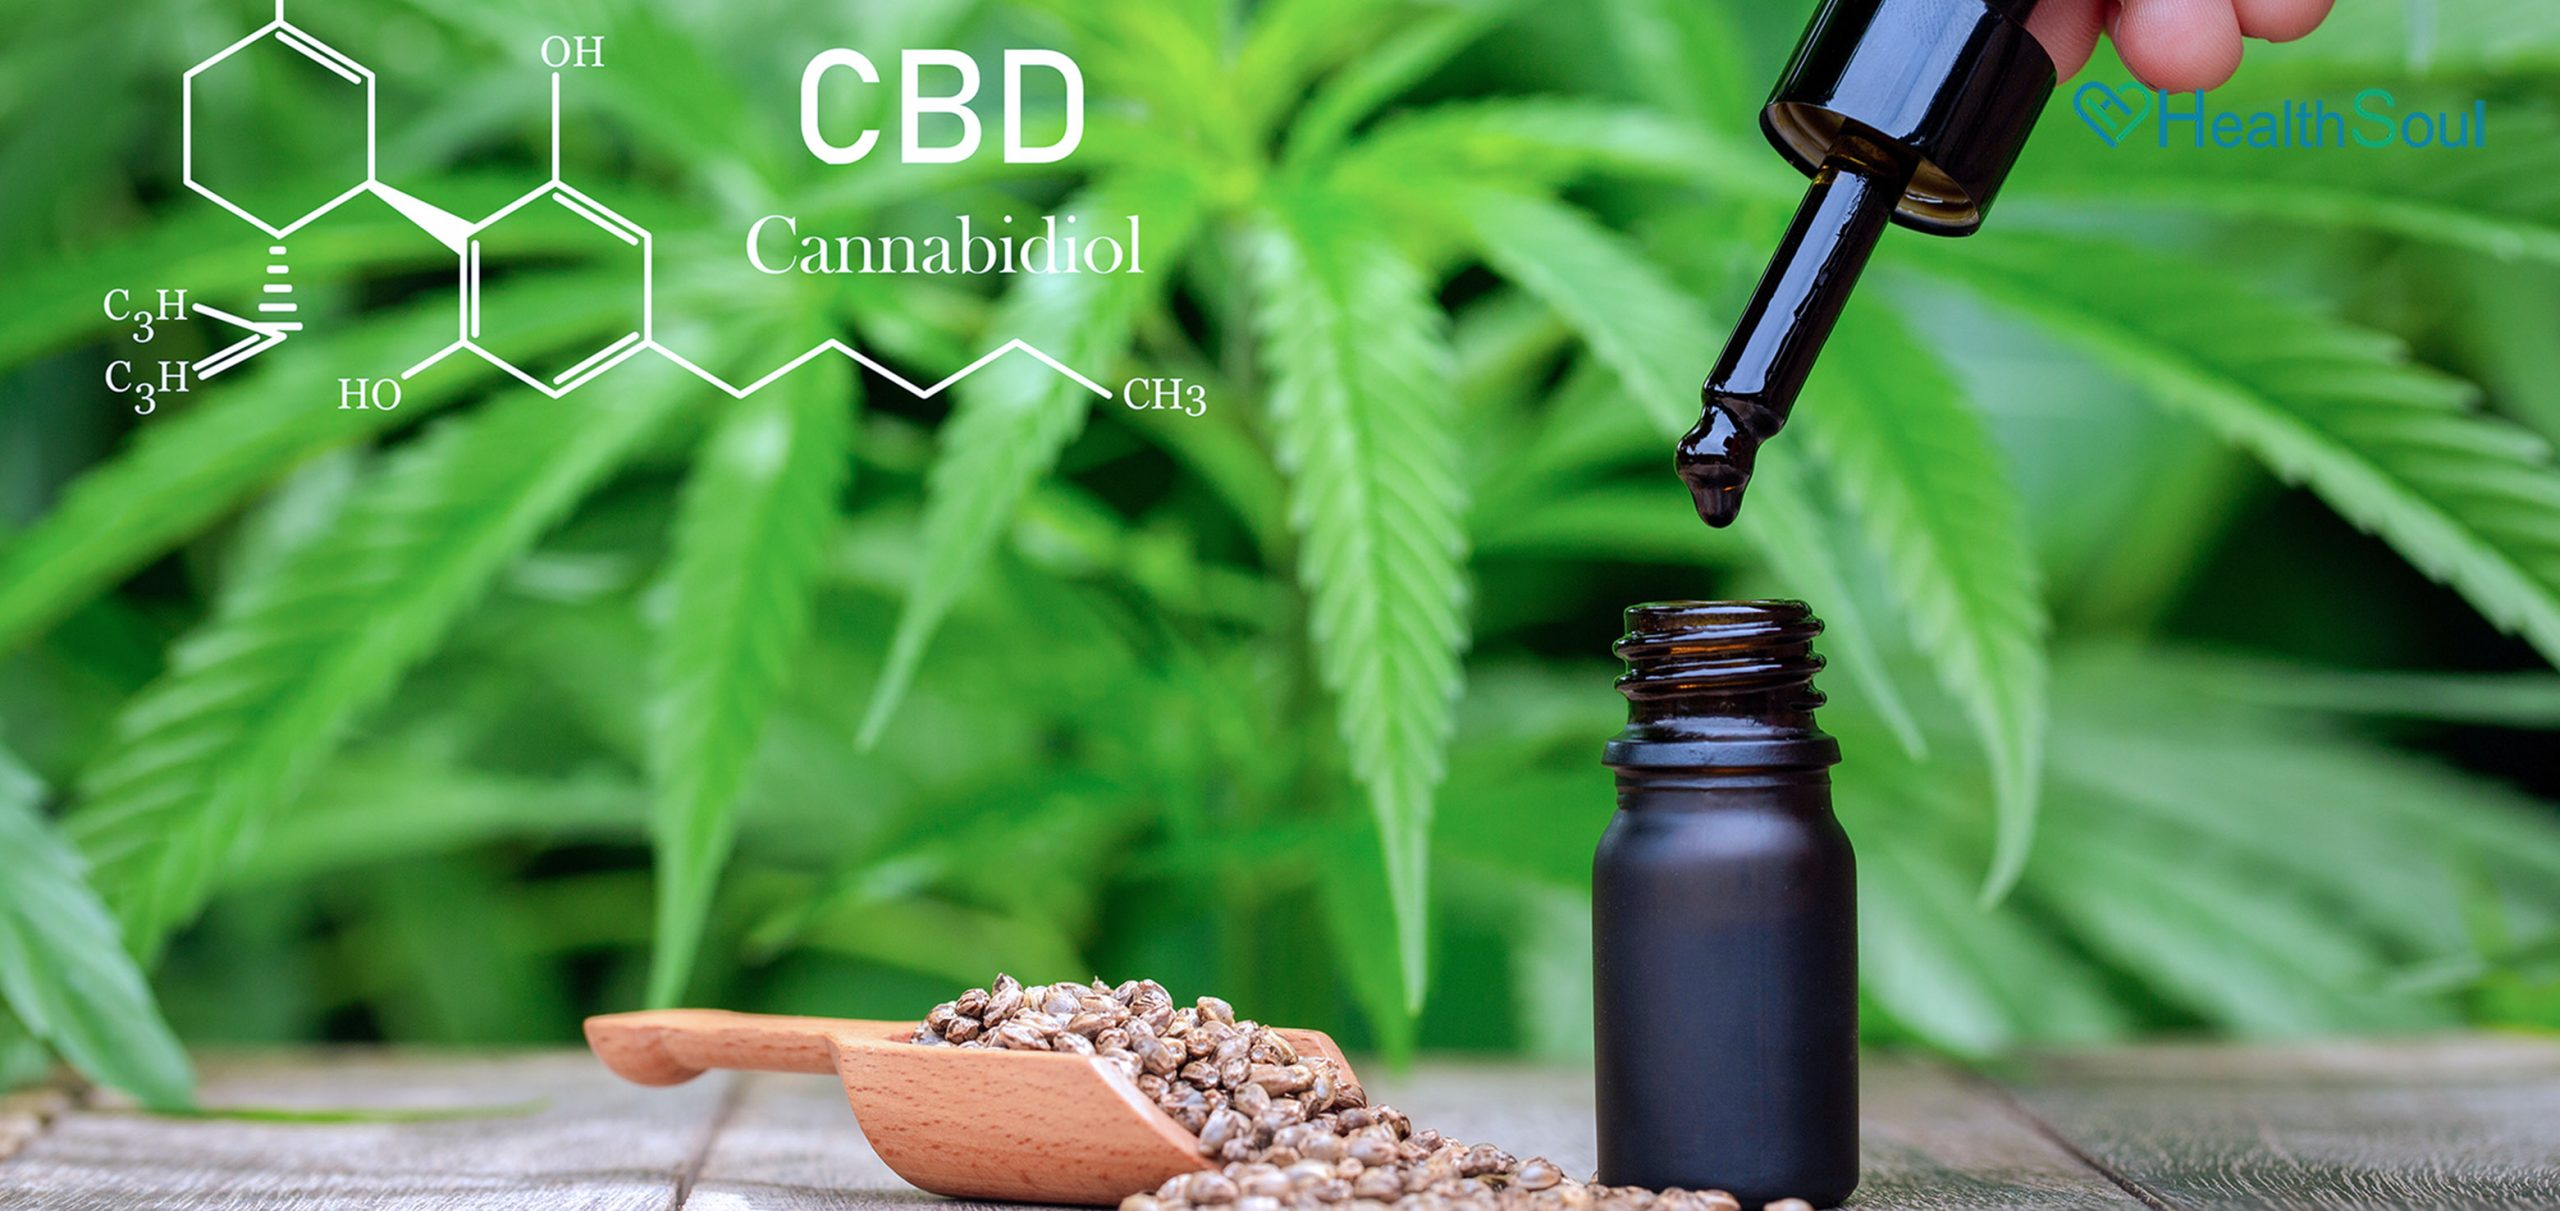 What is CBD - What Are its Benefits   HealthSoul